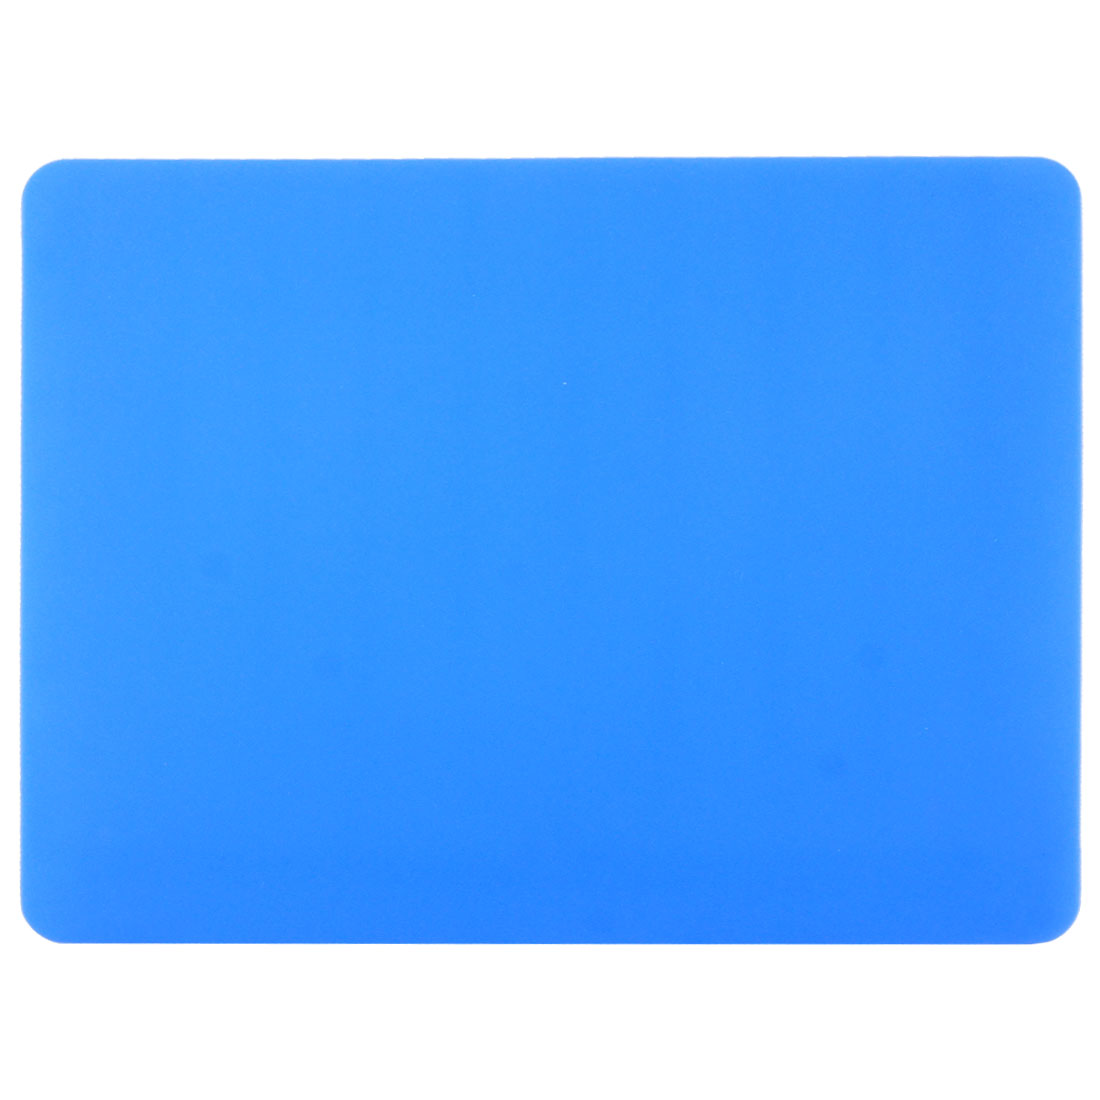 22.8cm x 19cm Rectangle Nonslip Soft Silicone Mouse Pad Blue for PC Computer